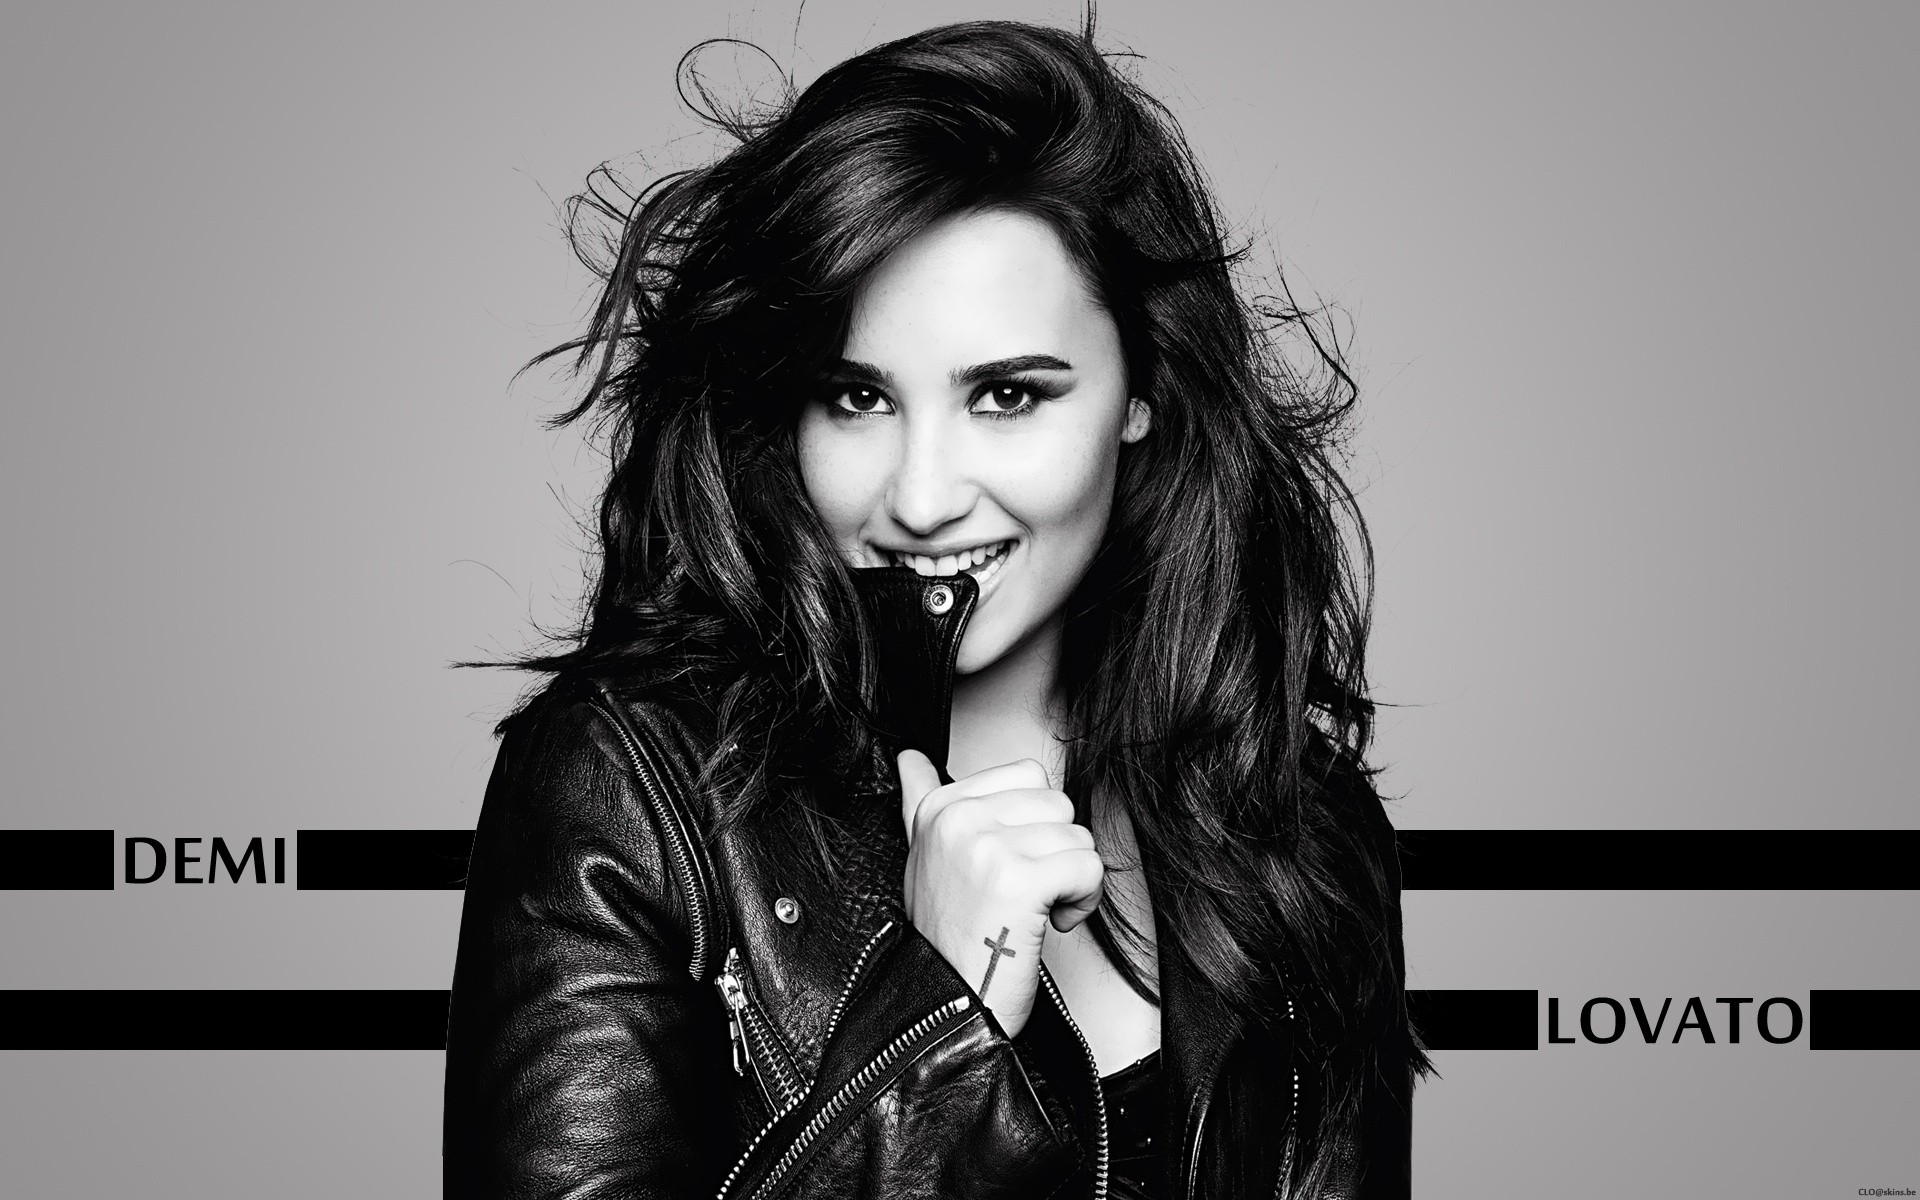 Demi Lovato Girlfriend 2013 Wallpapers HD Wallpapers 1920x1200